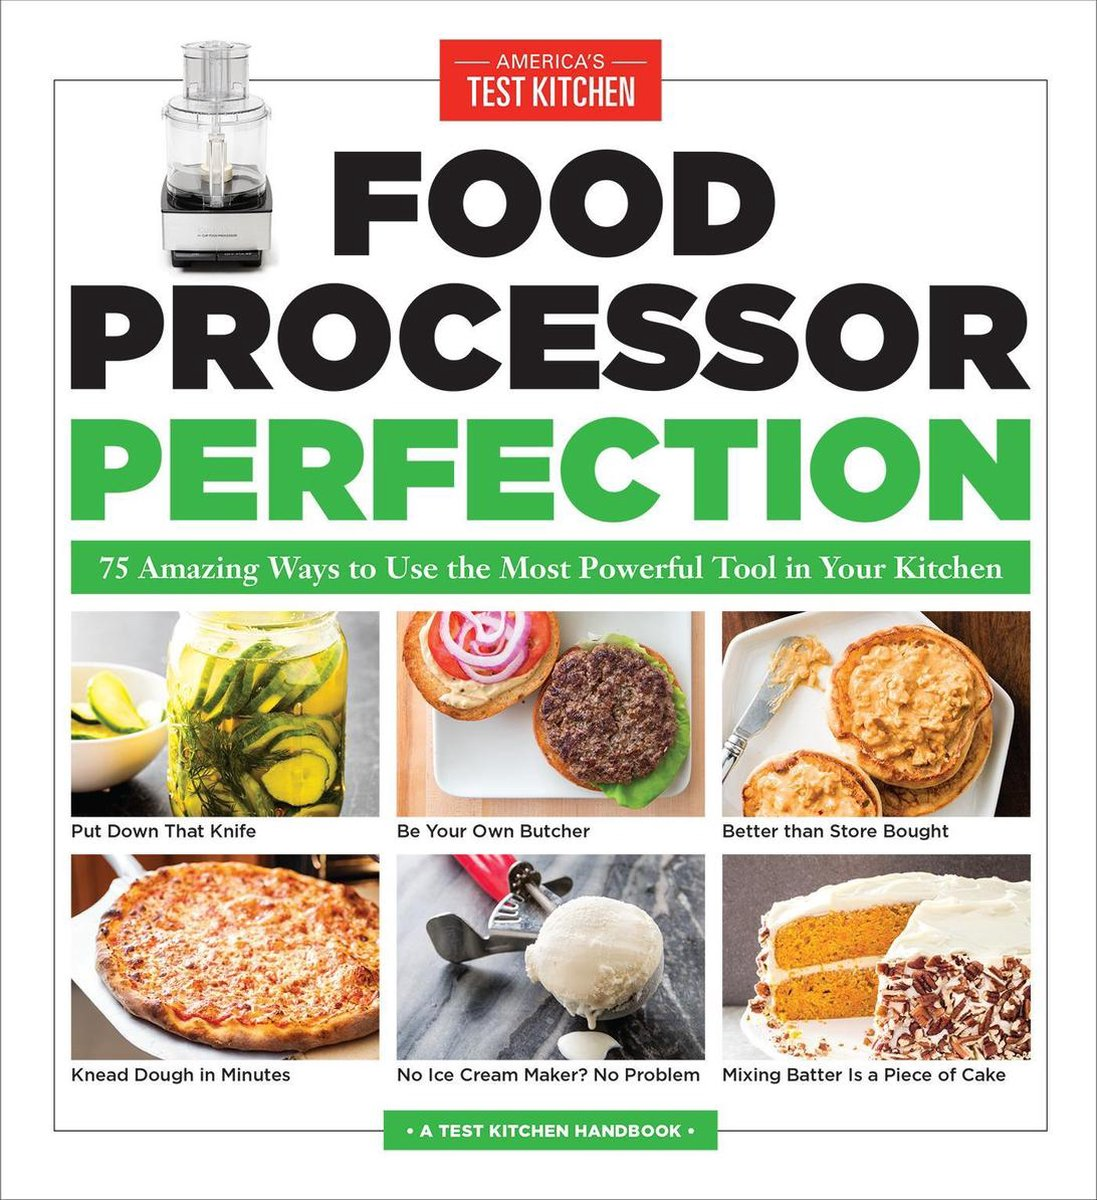 Food Processor Perfection - America's test kitchen